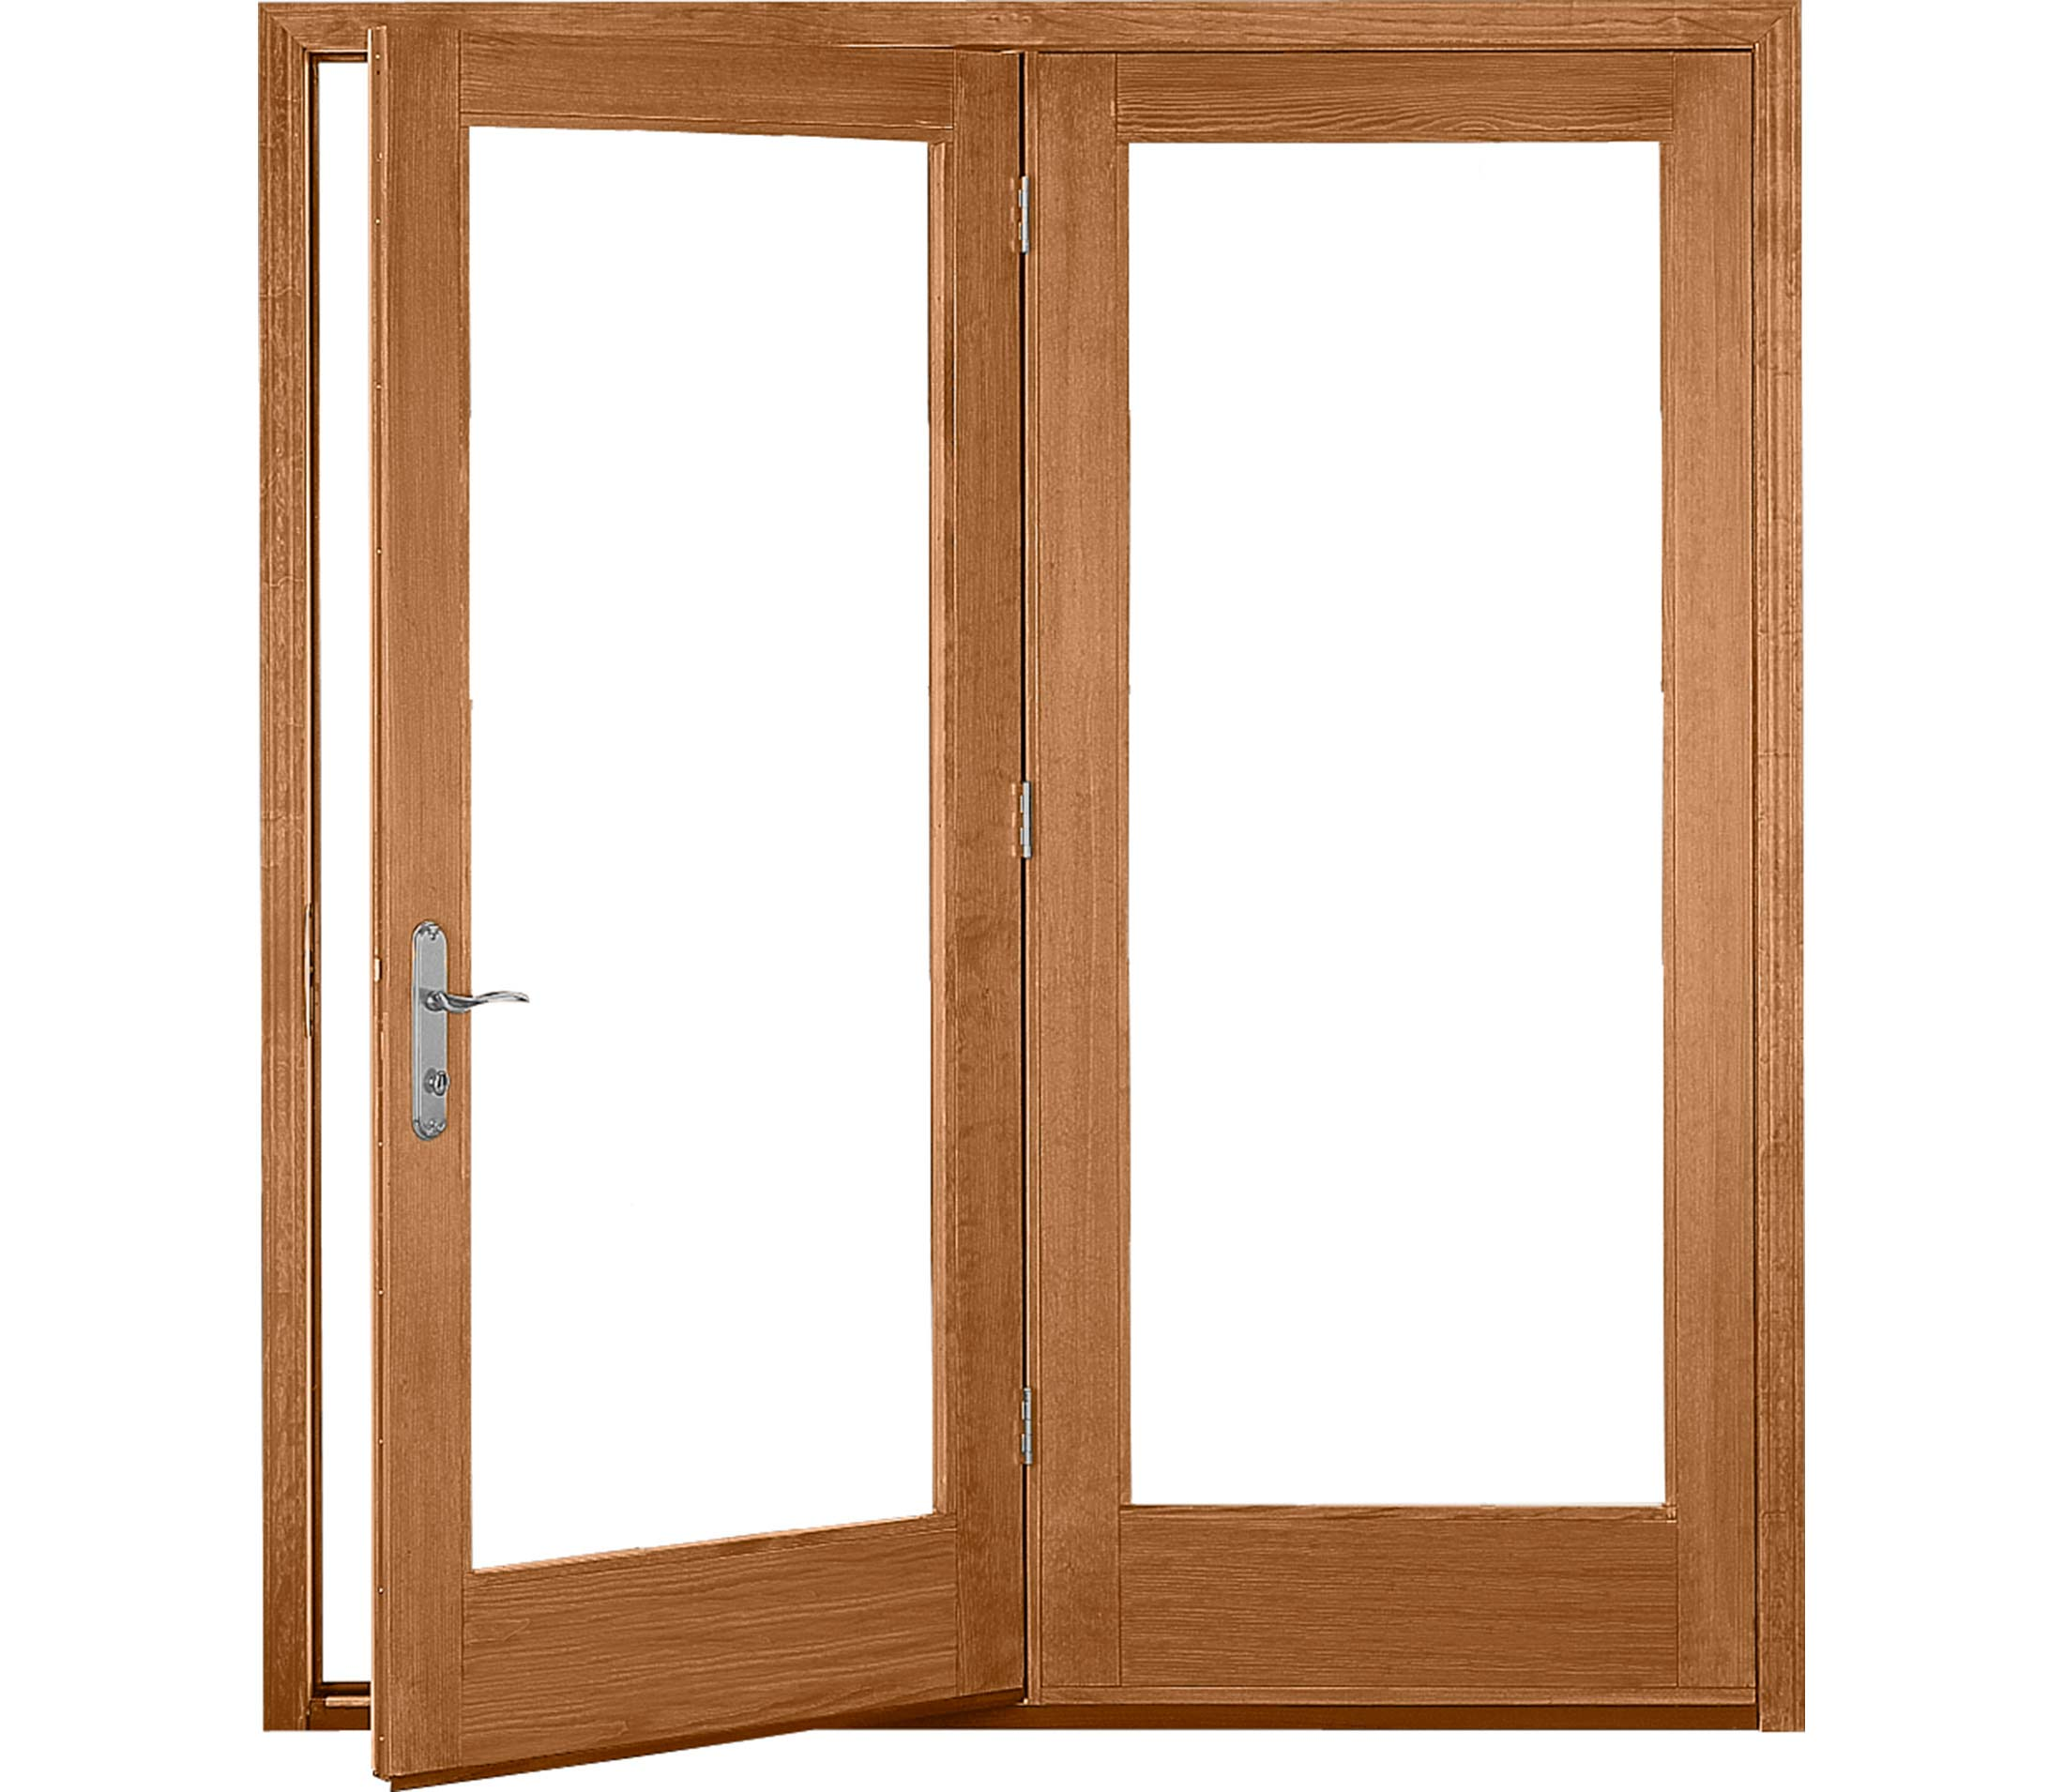 Pella French Patio Doors : Doors windows revuu